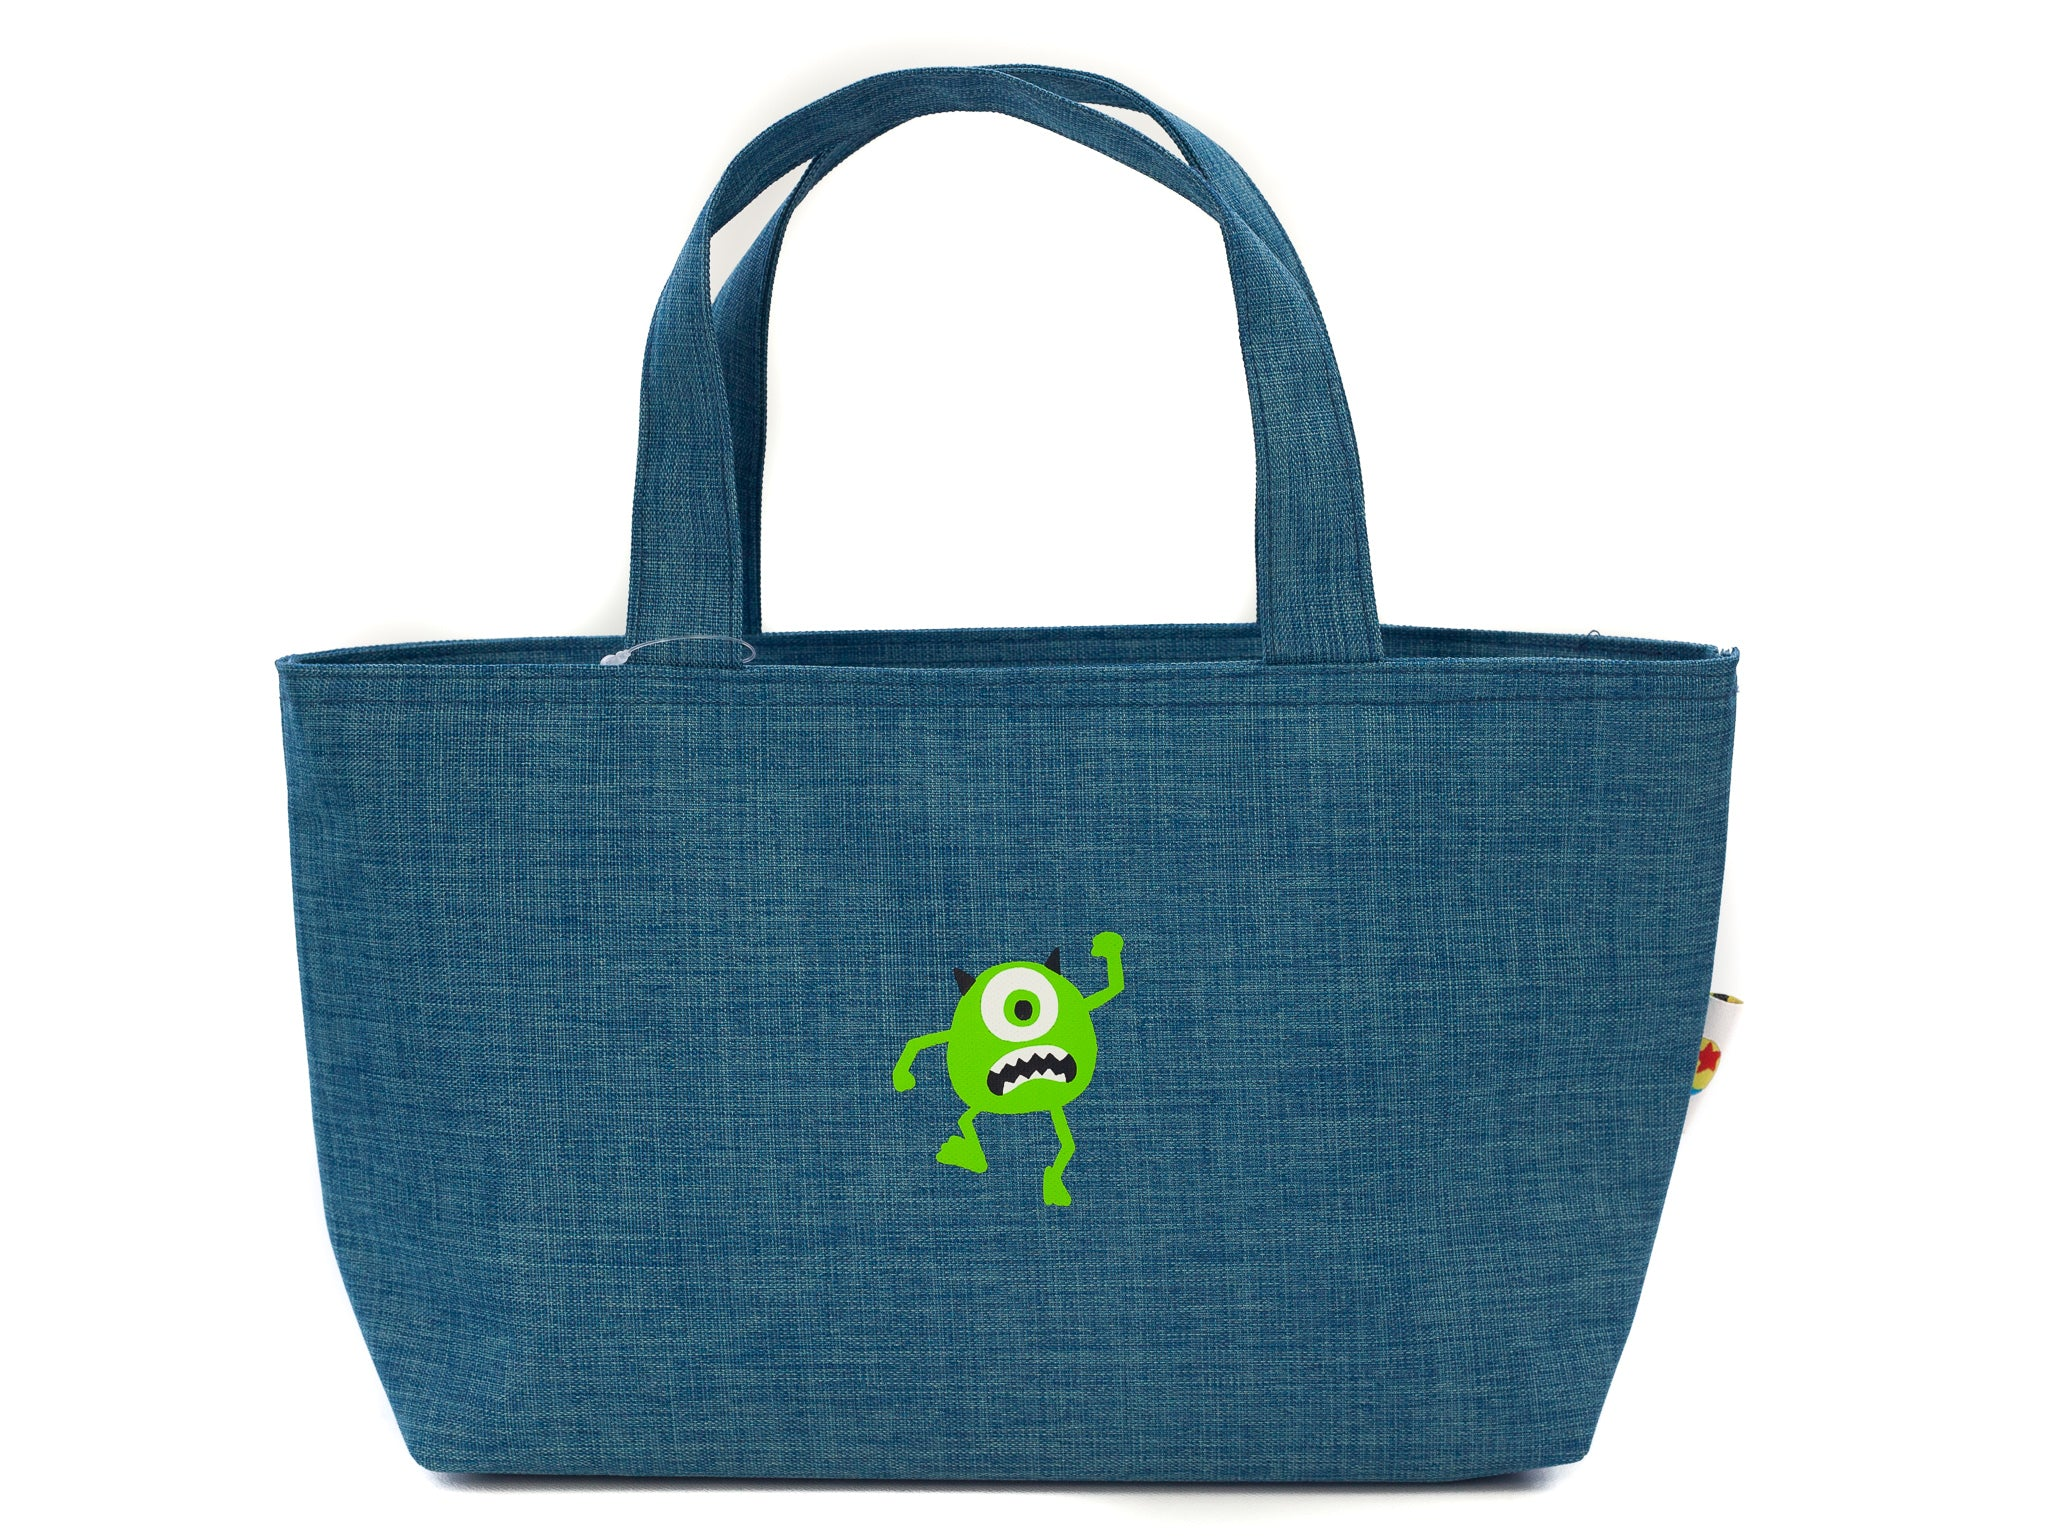 Monsters, Inc. Insulated Tote Bag | Mike